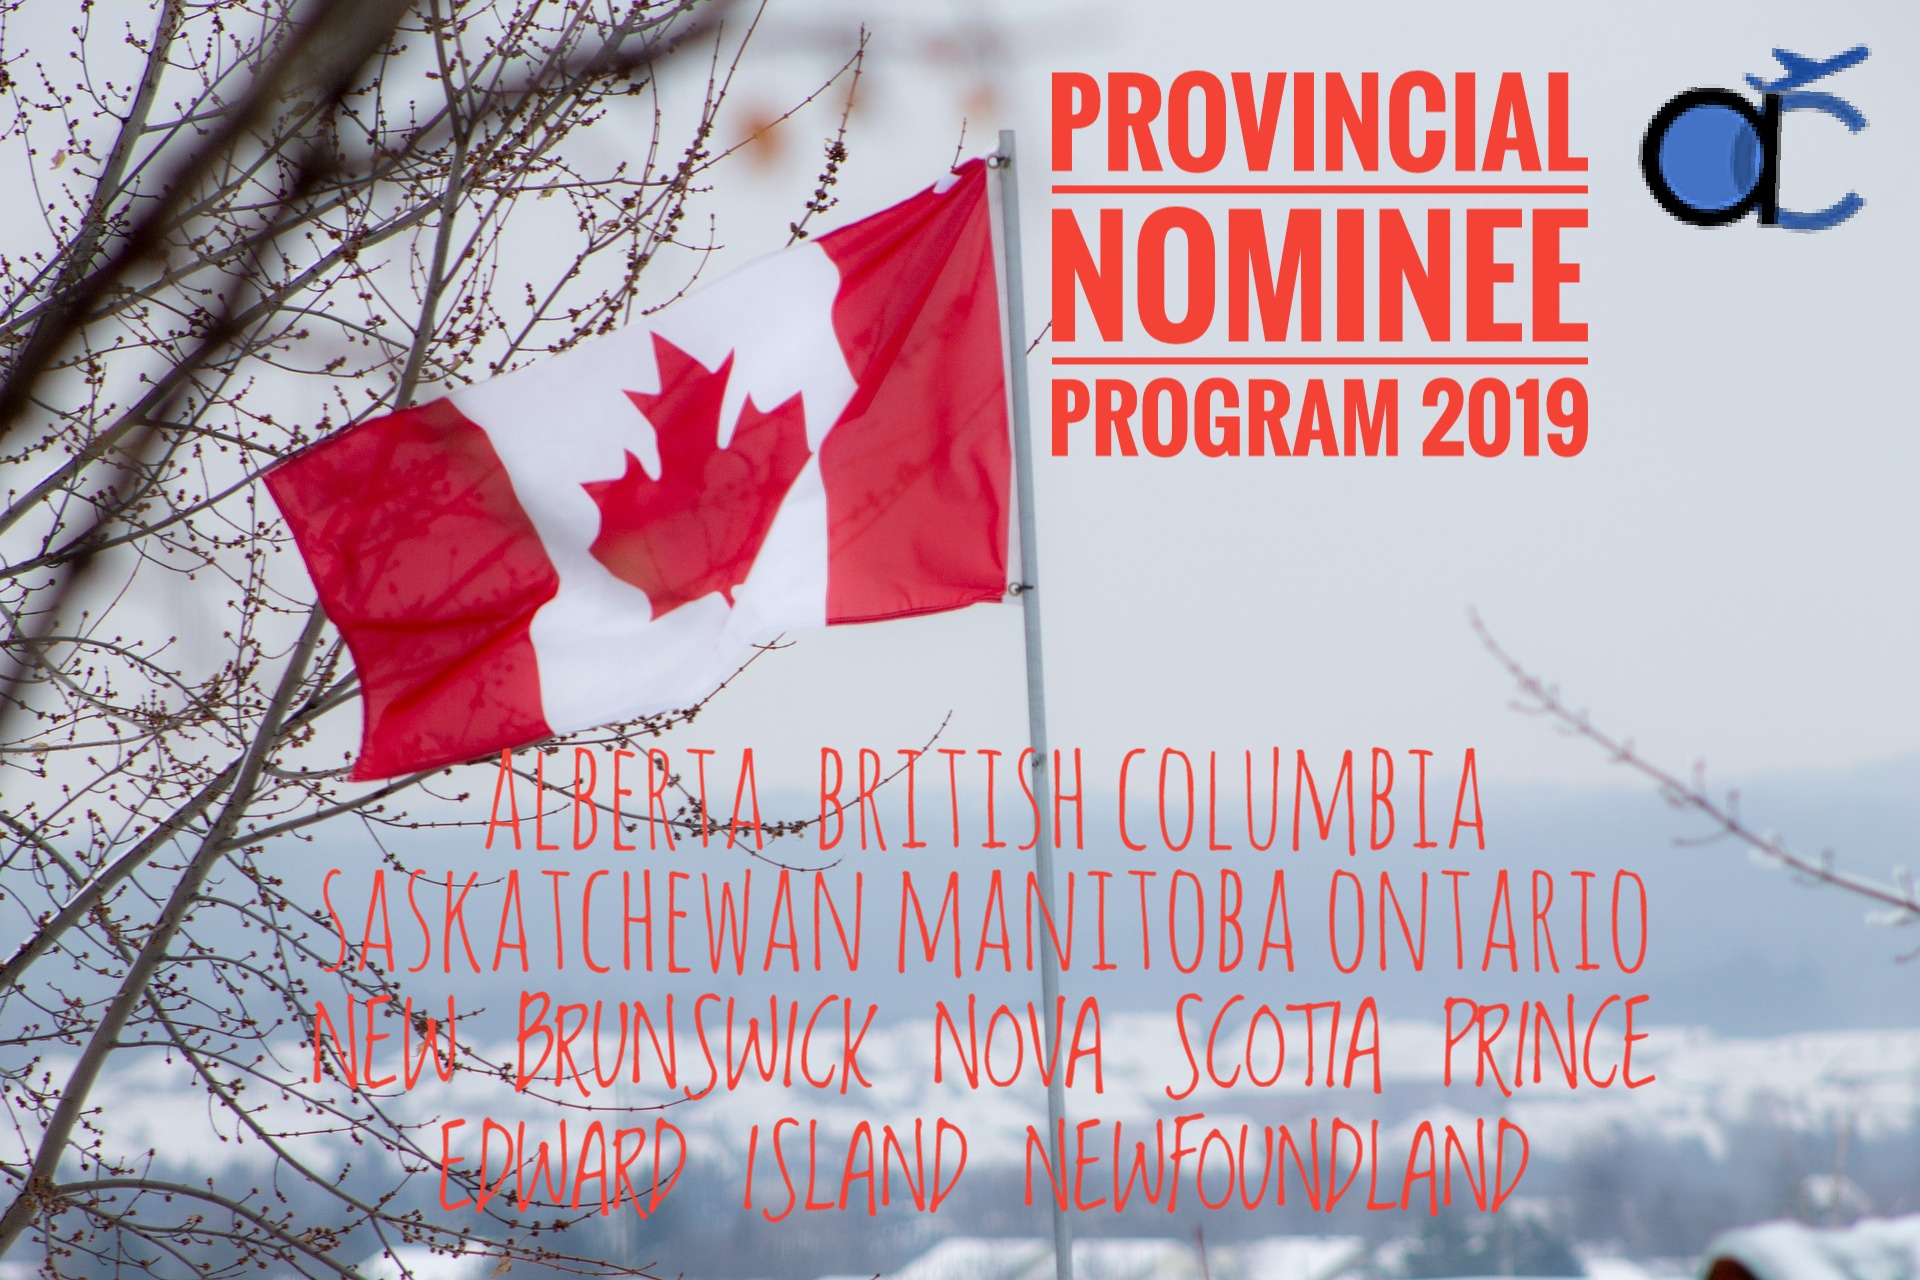 Provincial Nominee Program - Process for the provincial nominee program